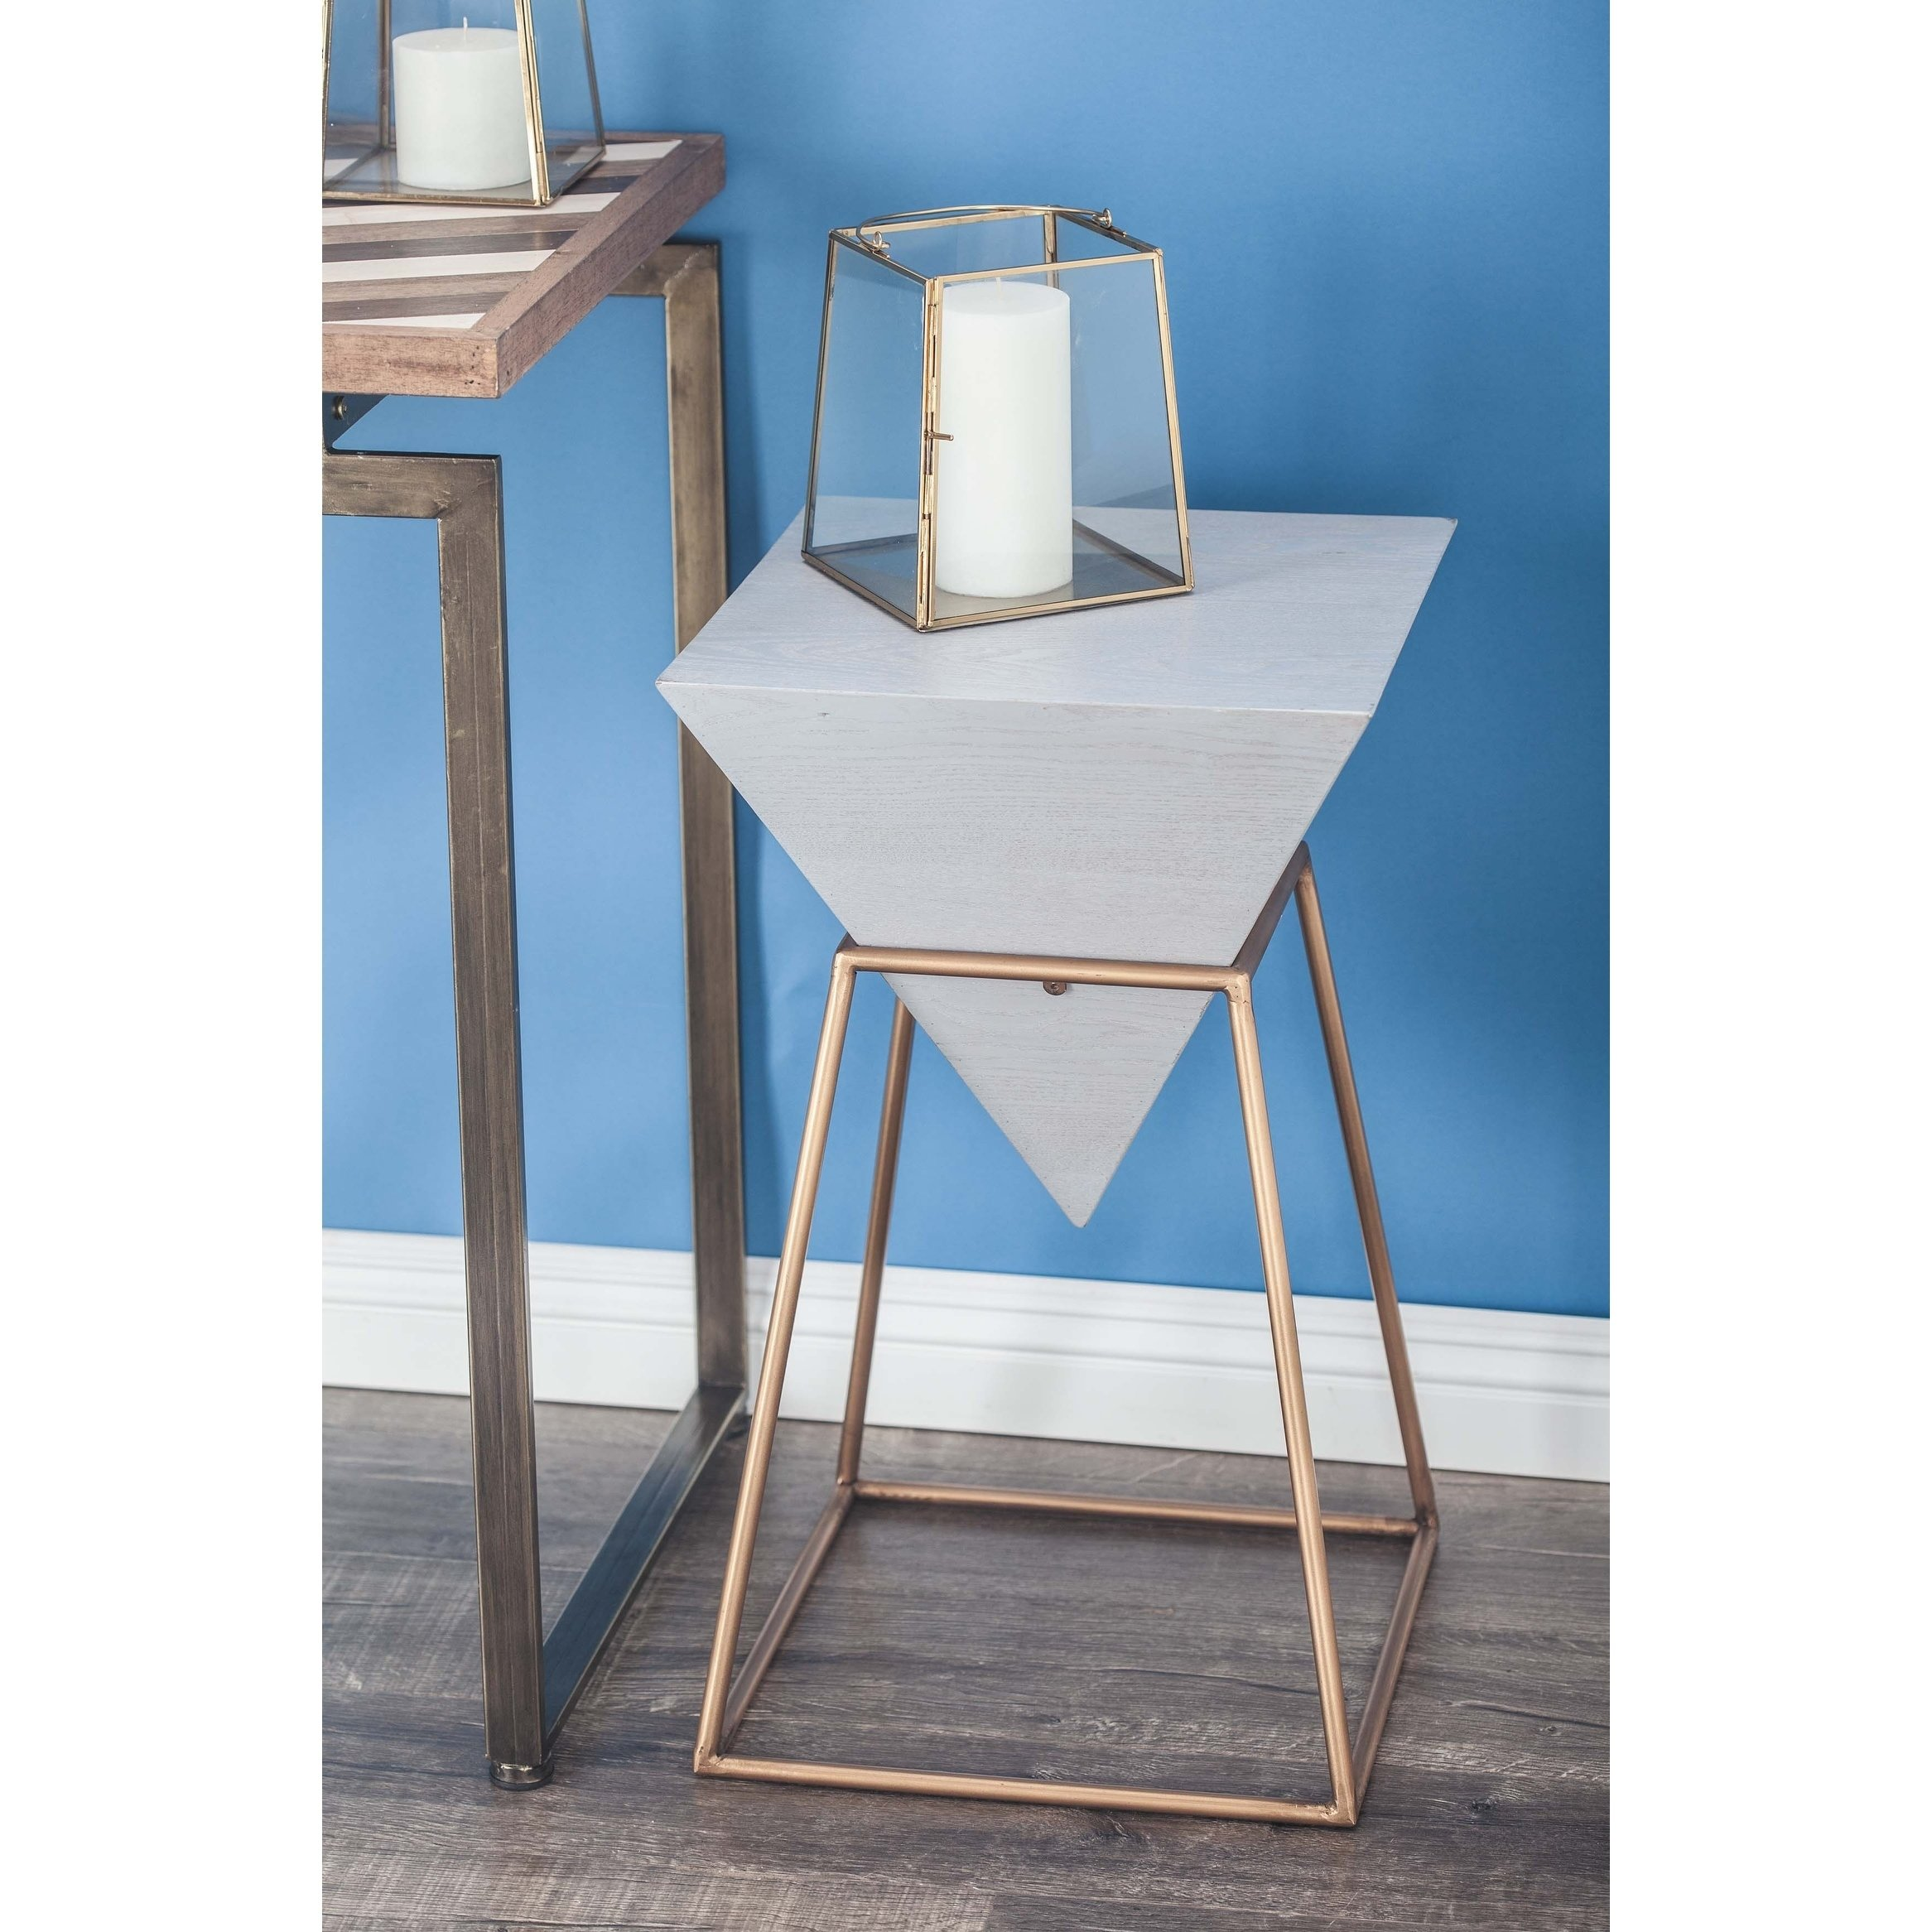 modern inch gray wood and iron accent table studio free shipping today chaise furniture red home accessories seaside decor farmhouse style dining room kitchen cupboards patio